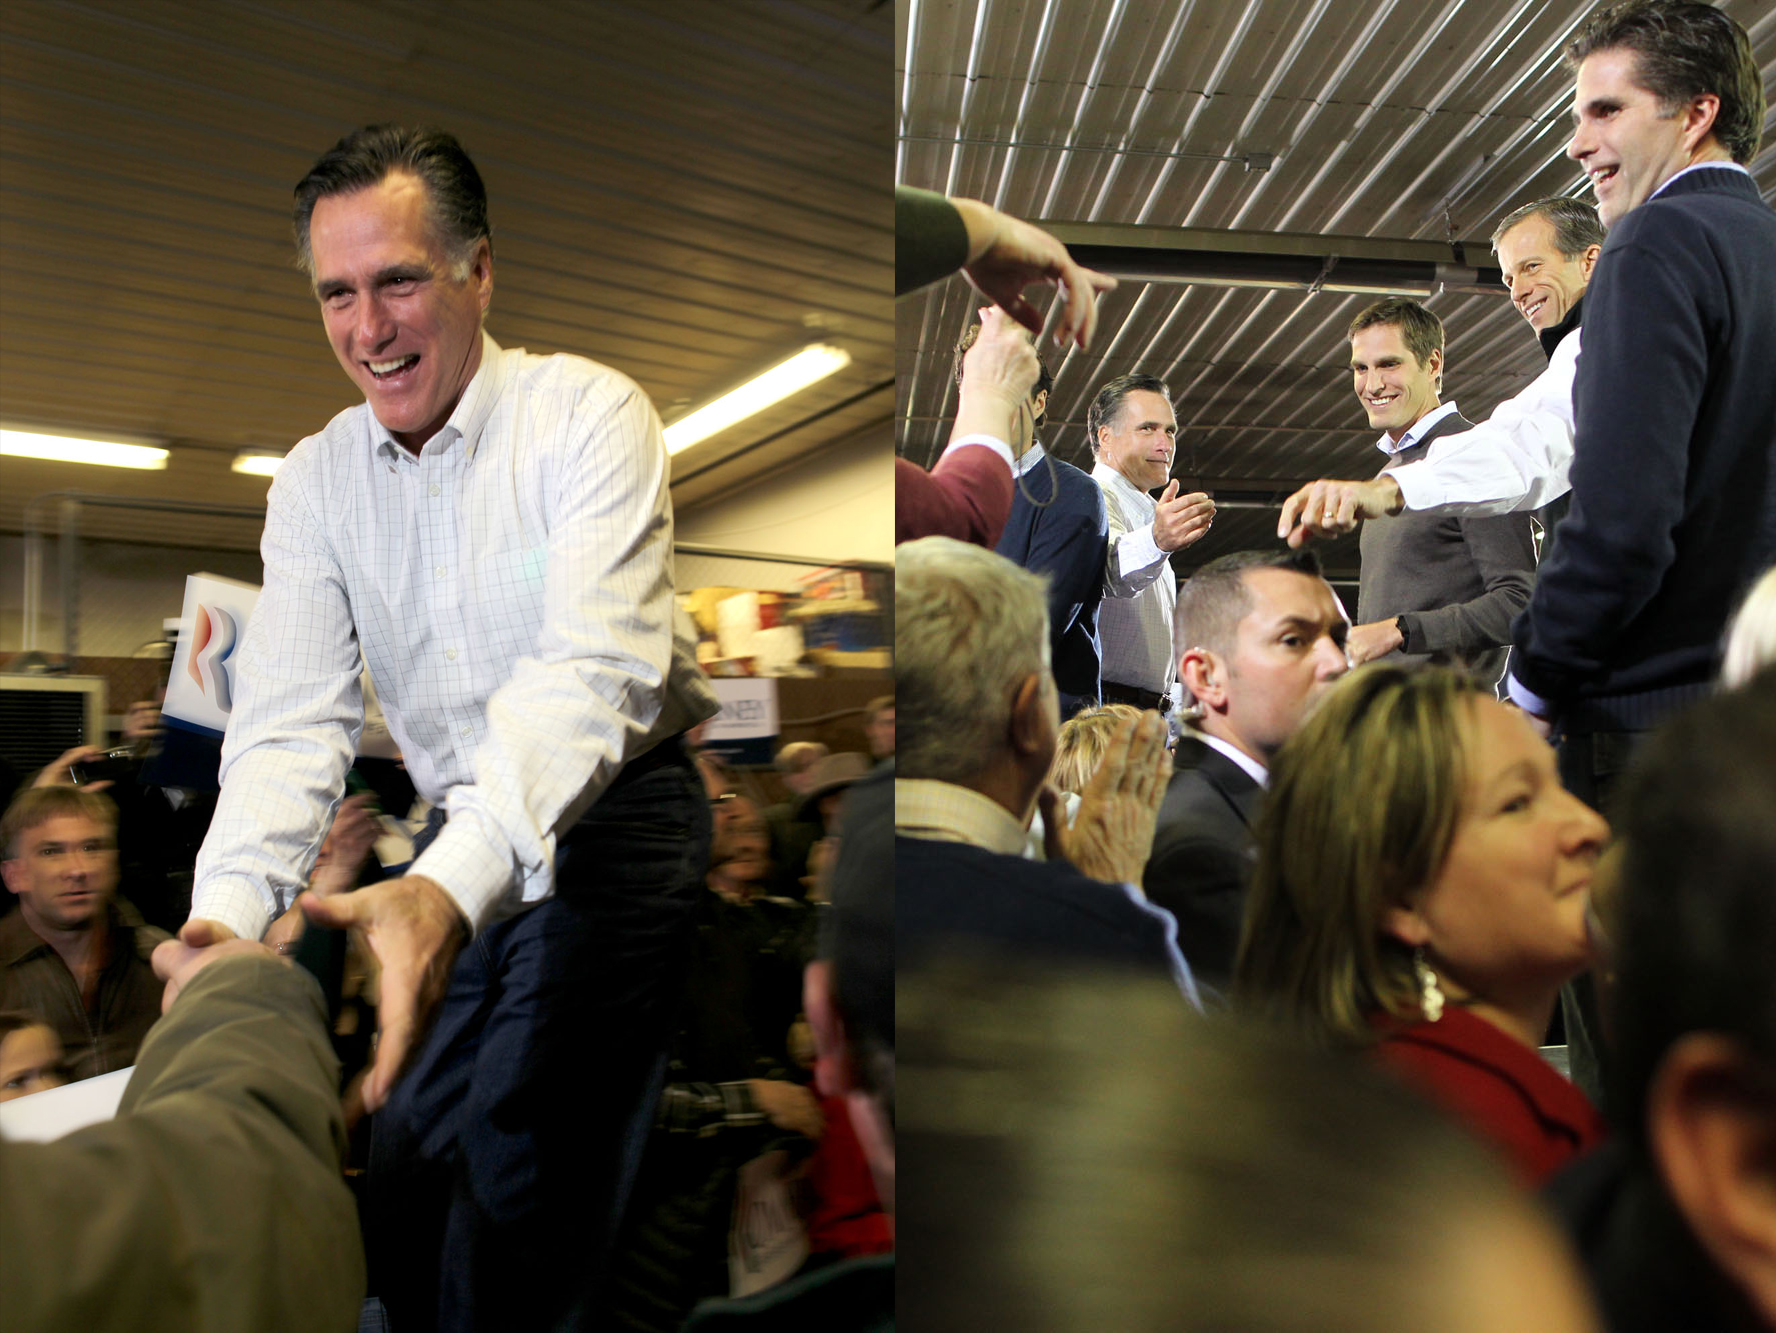 Republican presidential candidate Mitt Romney brings his family on stage at Pate Asphalt.